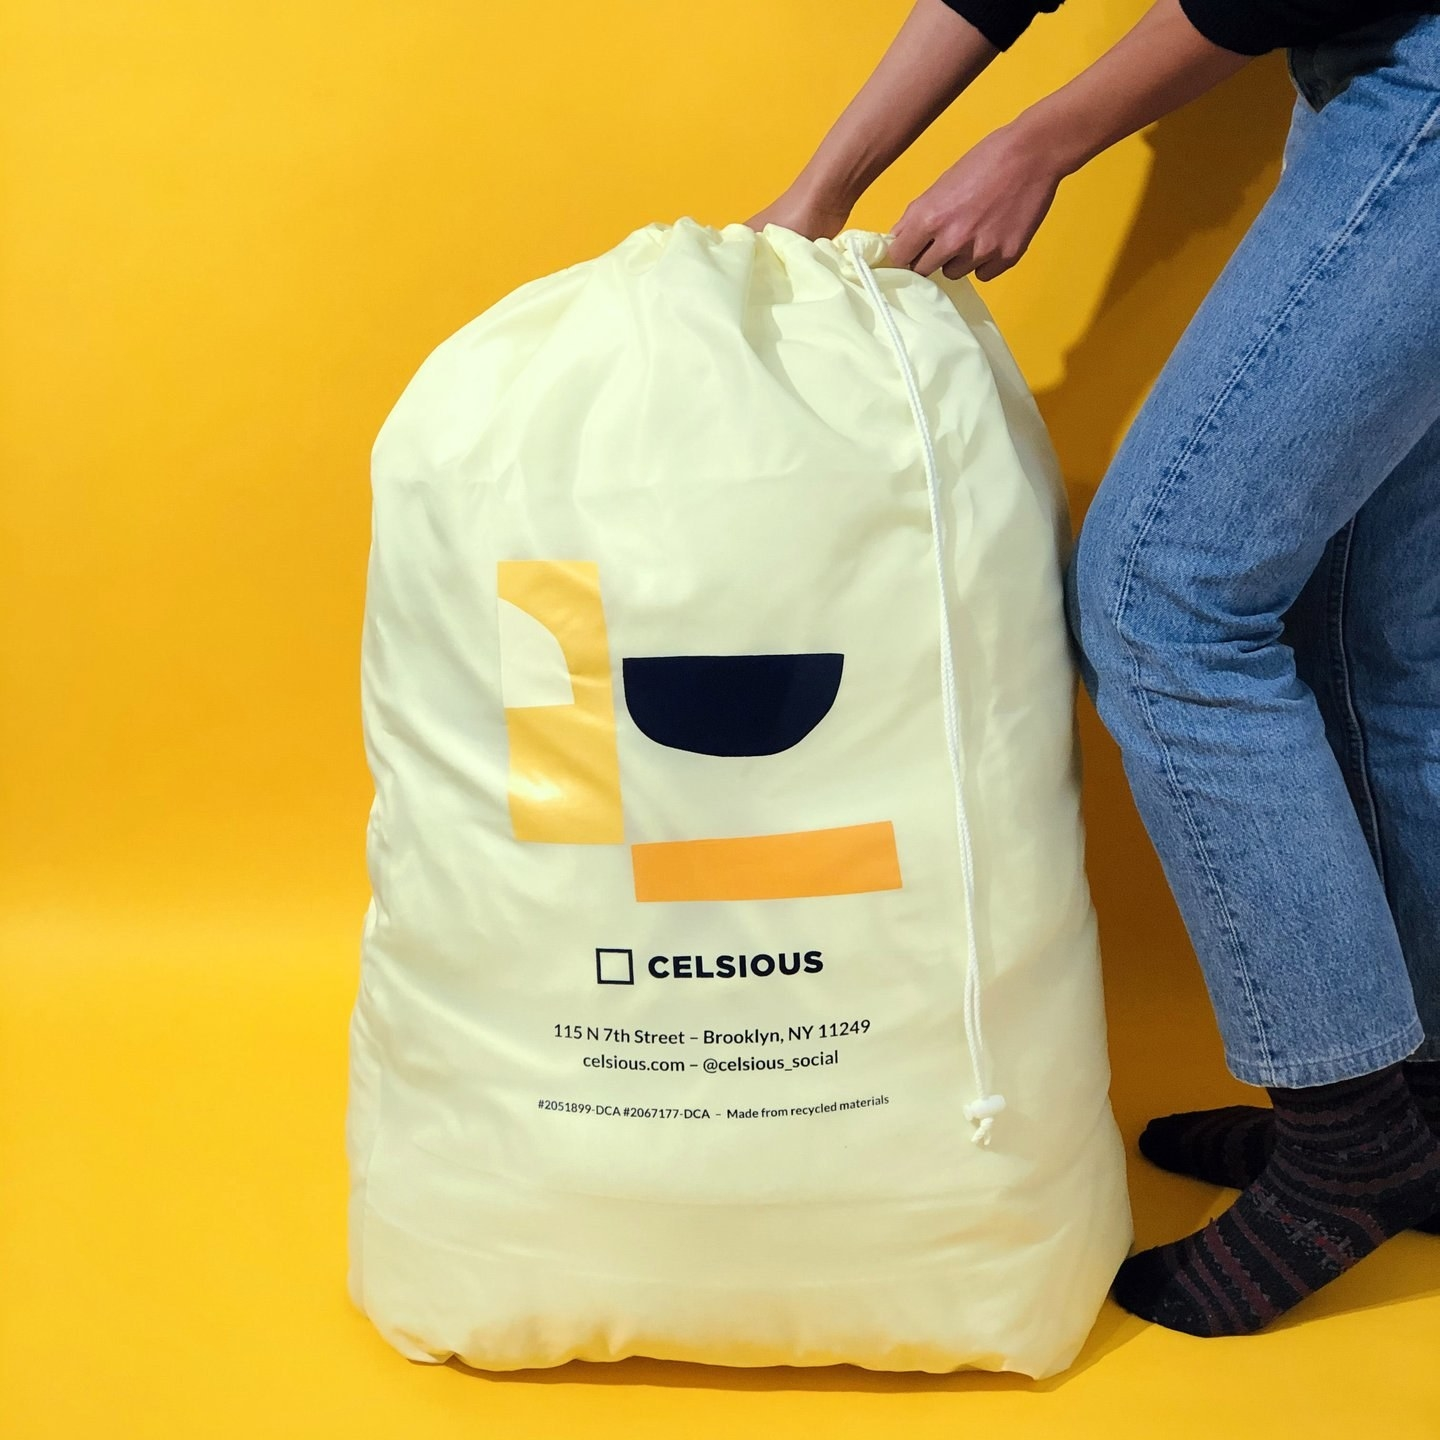 closeup of a full celsious extra large laundry bag against a bright yellow backdrop